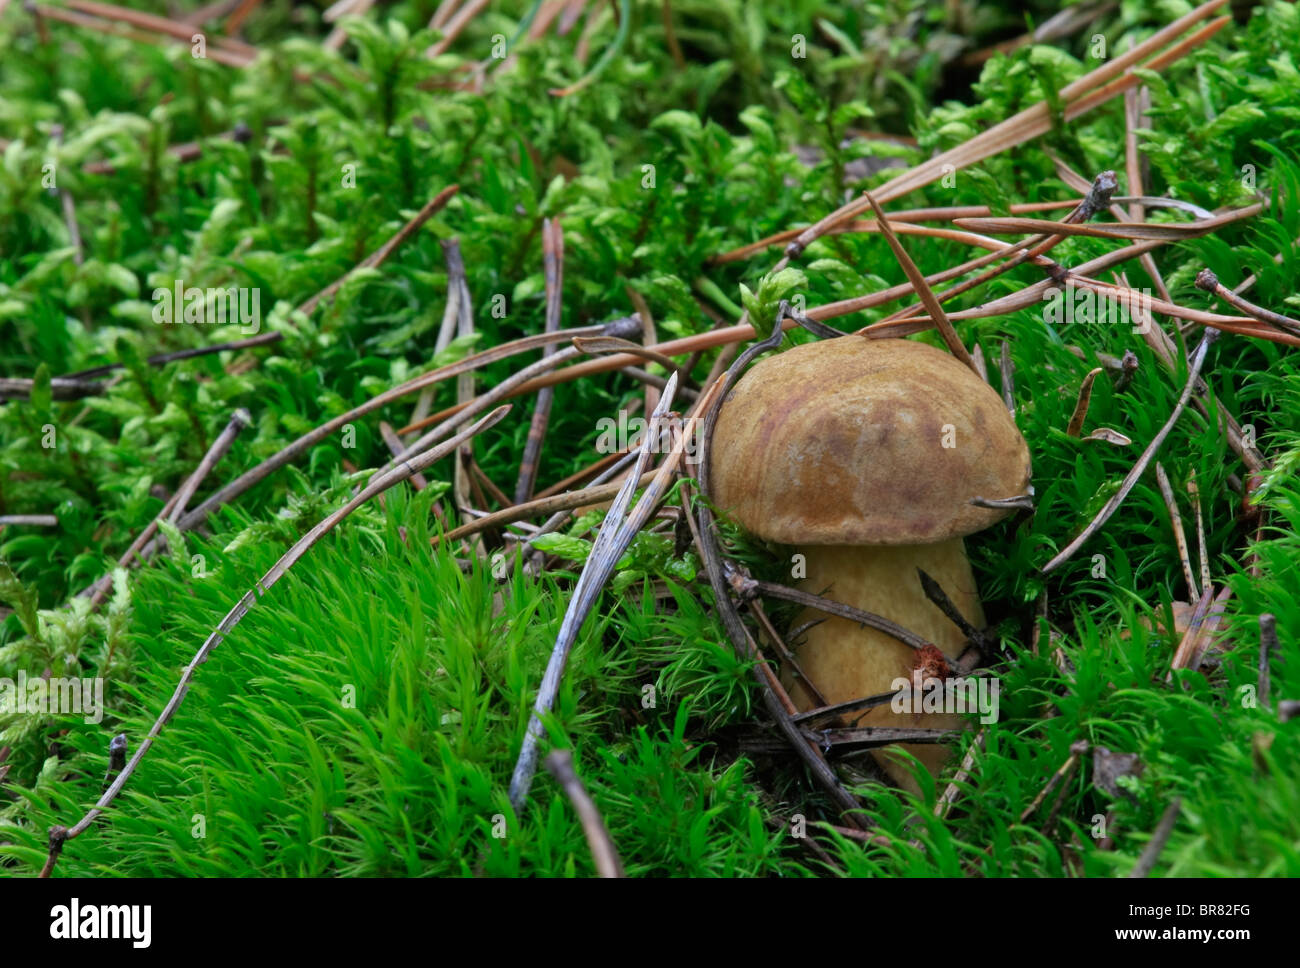 conifer needles, moss and muchroom - Stock Image